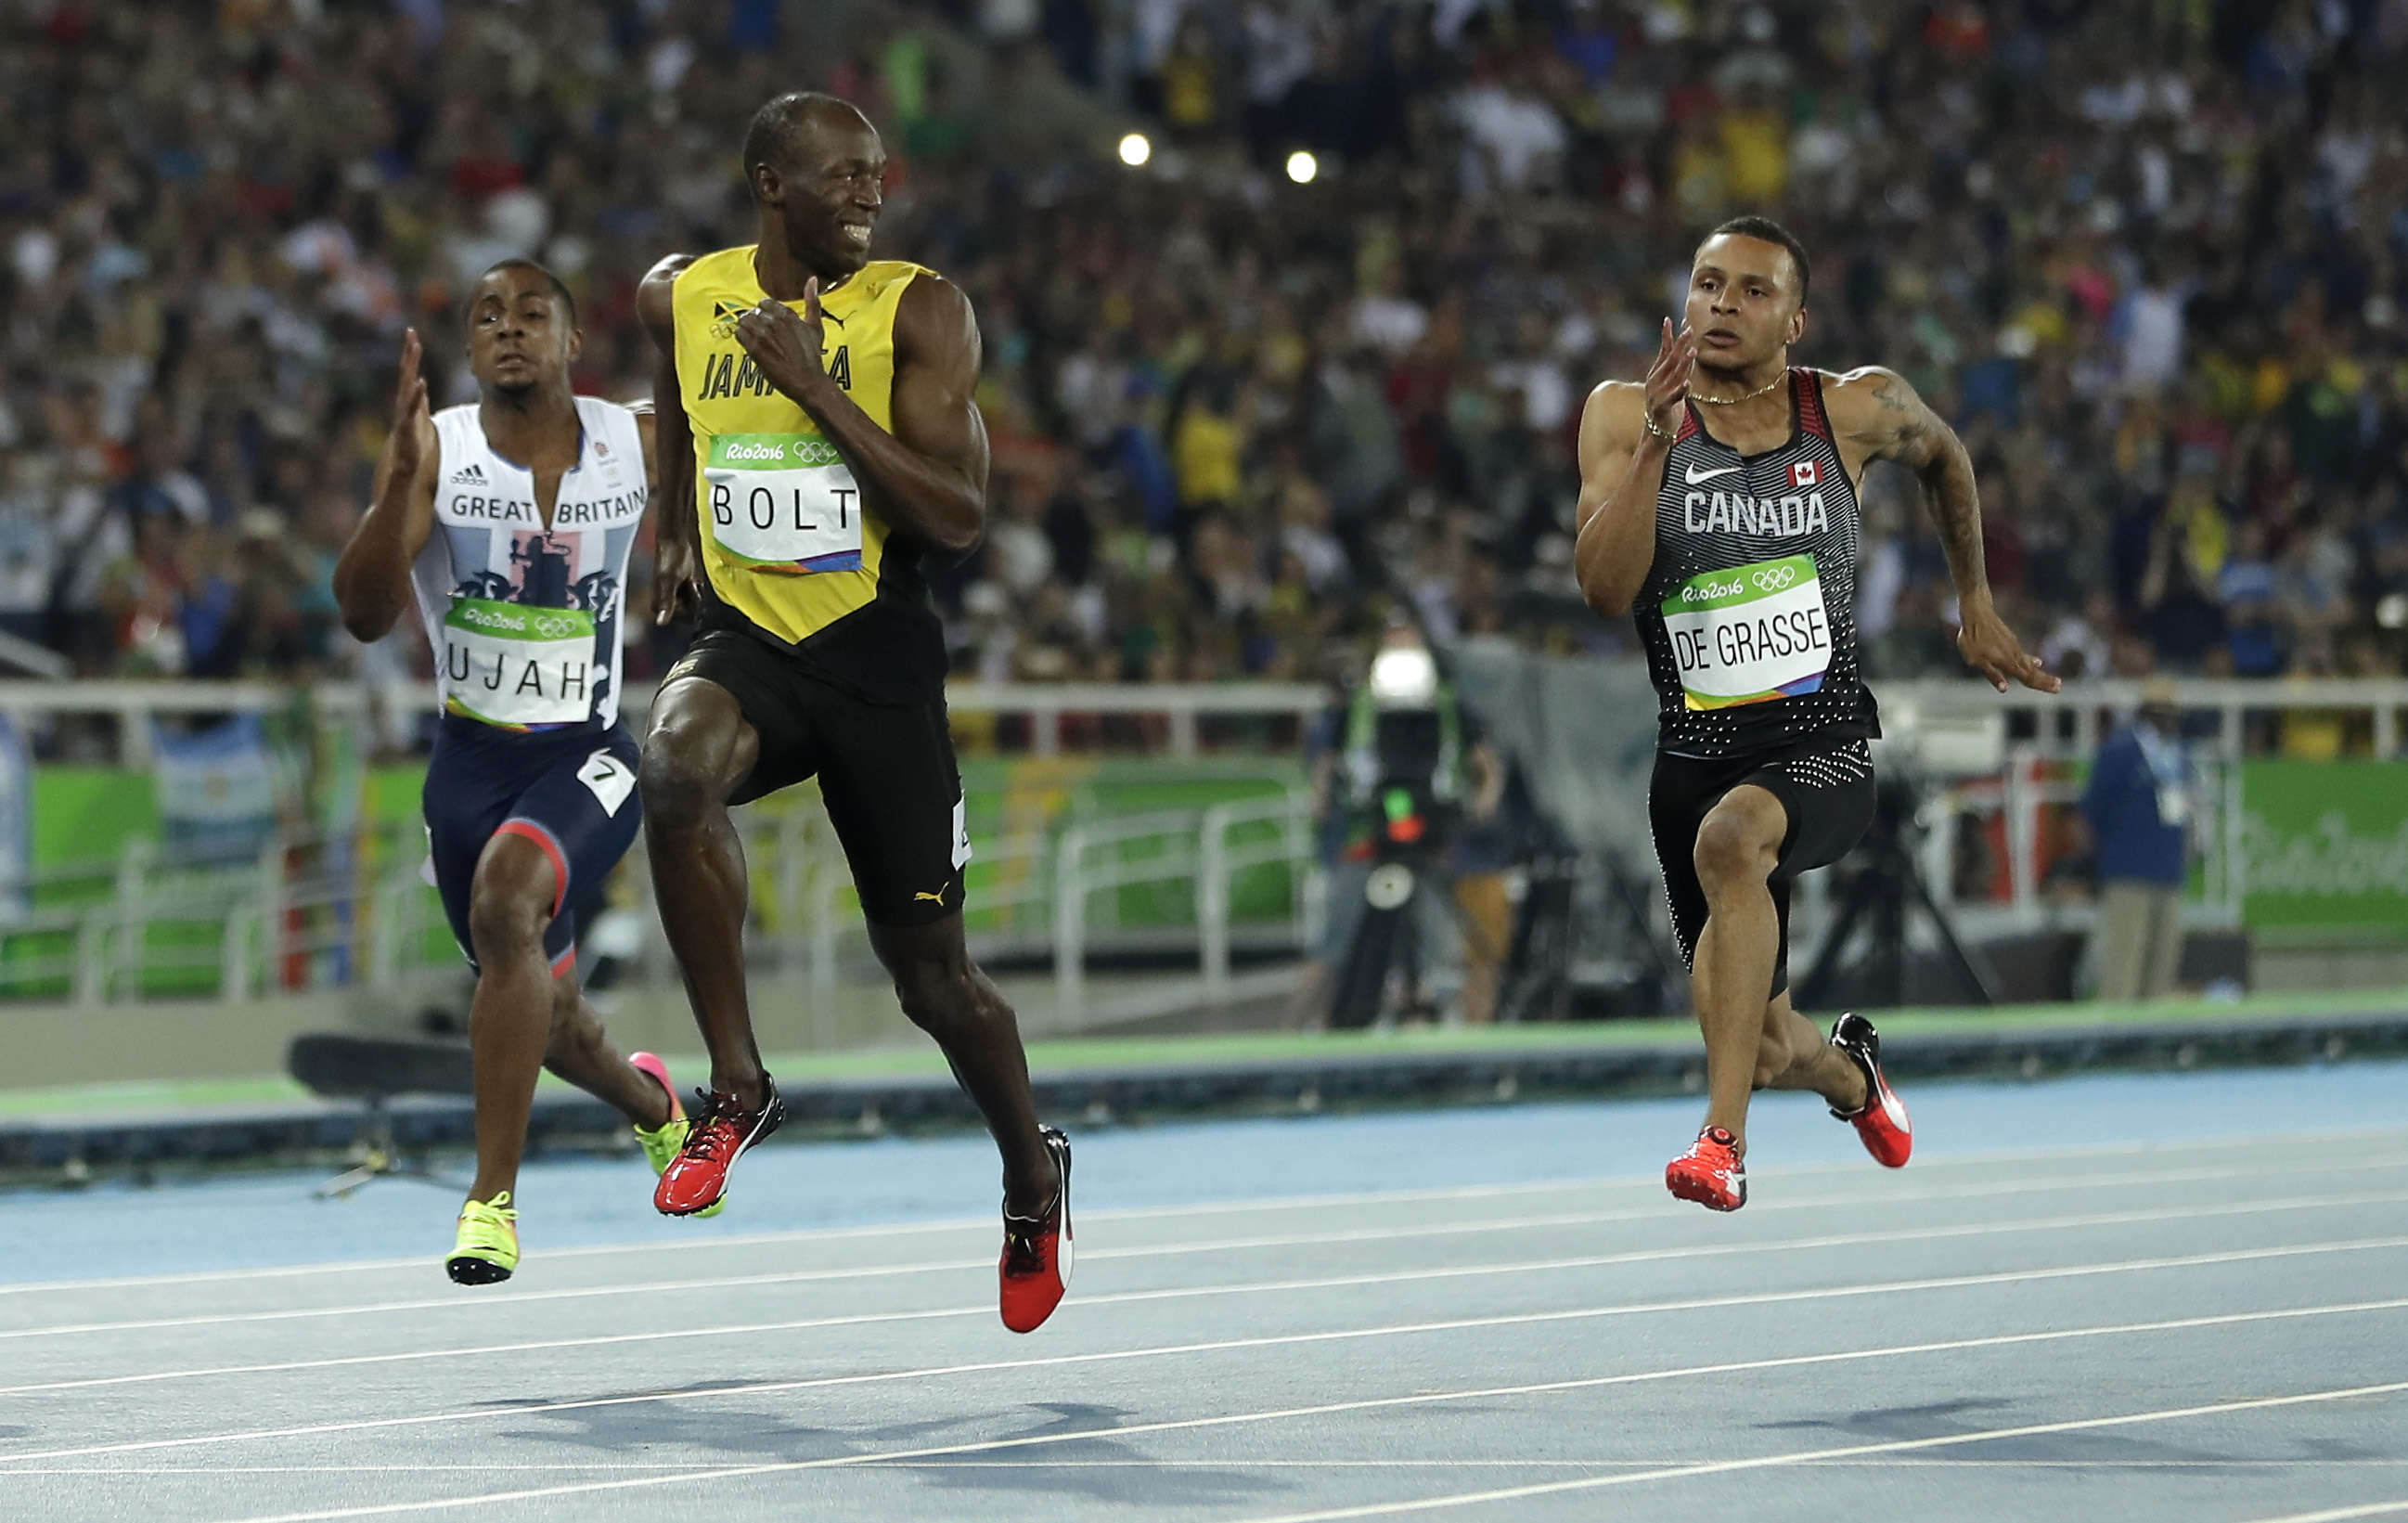 Jamaica's Usain Bolt looks to Canada's Andre De Grasse, right, during a men's 100-meter semifinal during the athletics competitions in the Olympic stadium of the 2016 Summer Olympics in Rio de Janeiro, Brazil, Sunday, Aug. 14, 2016. (AP Photo/Matt Slocum)